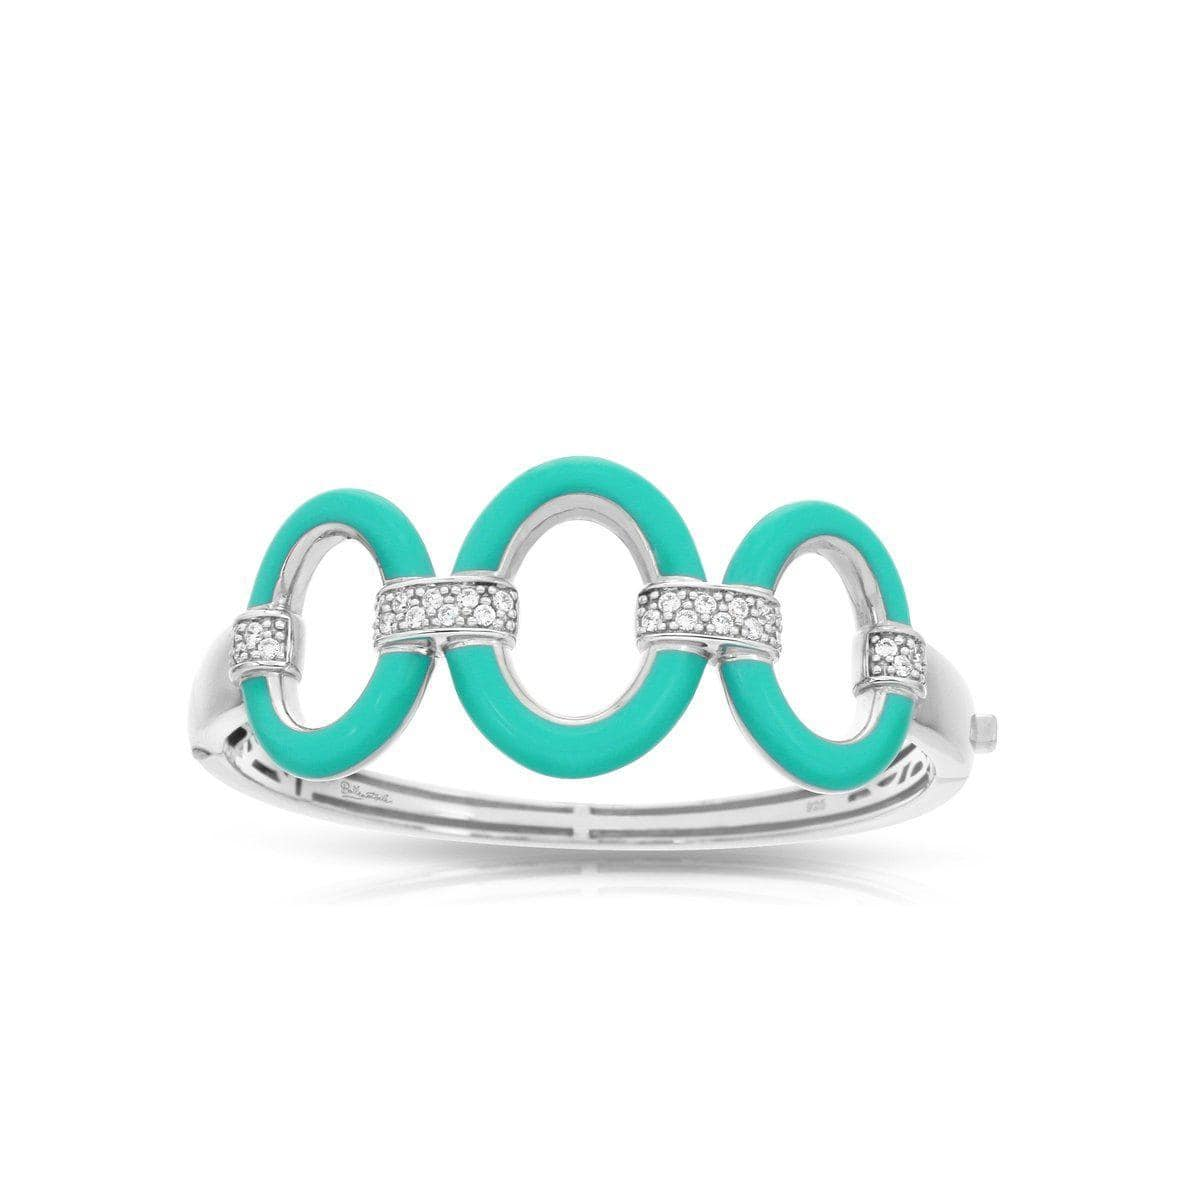 Connection Aquamarine Bangle-Belle Etoile-Renee Taylor Gallery